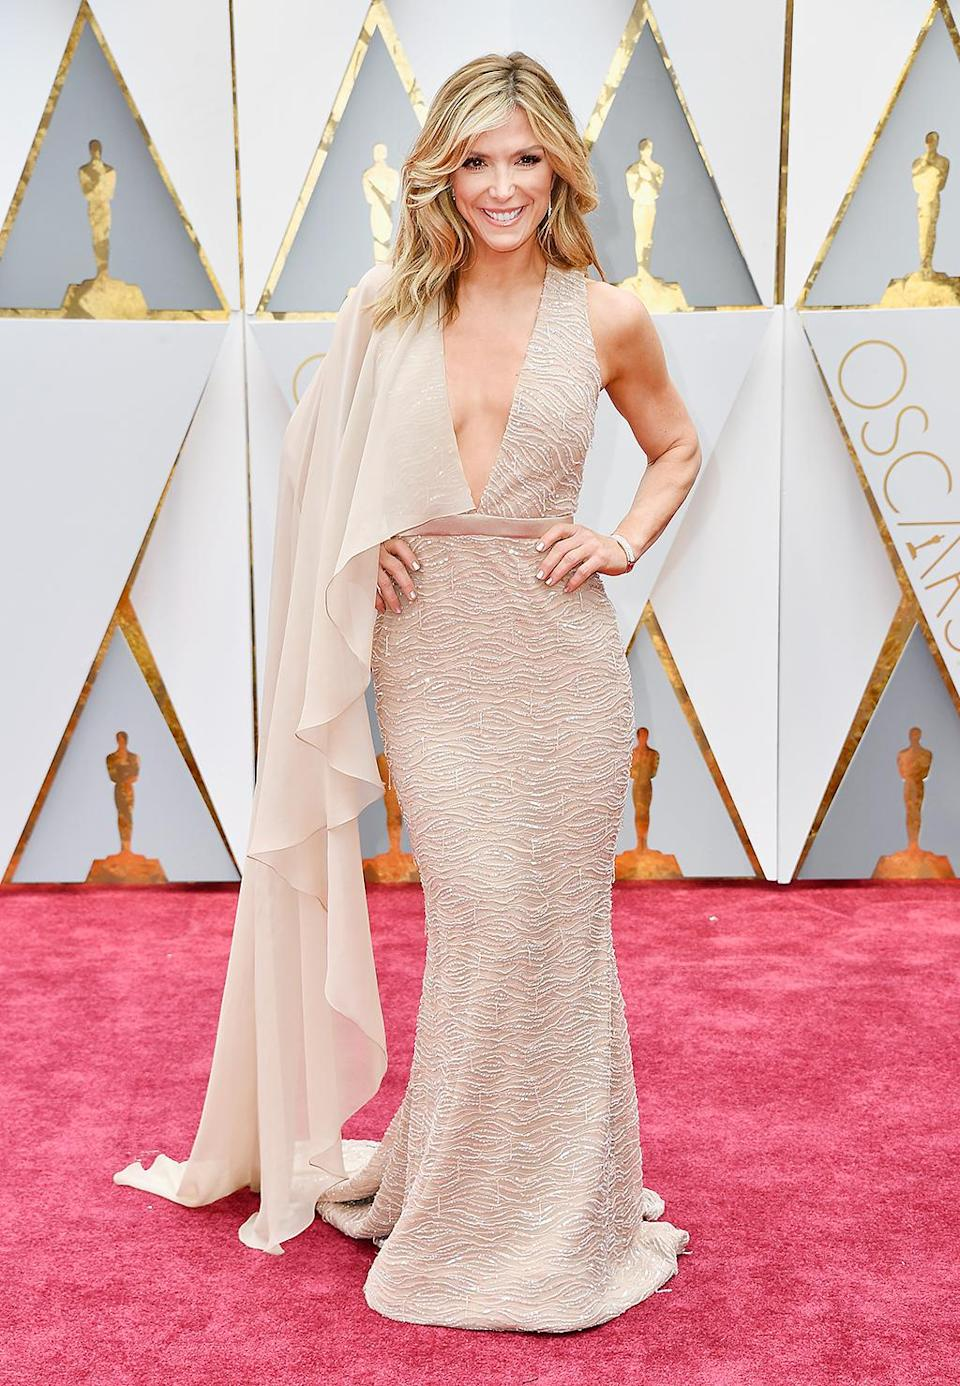 <p>TV personality Debbie Matenopoulos attends the 89th Annual Academy Awards at Hollywood & Highland Center on February 26, 2017 in Hollywood, California. (Photo by Frazer Harrison/Getty Images) </p>